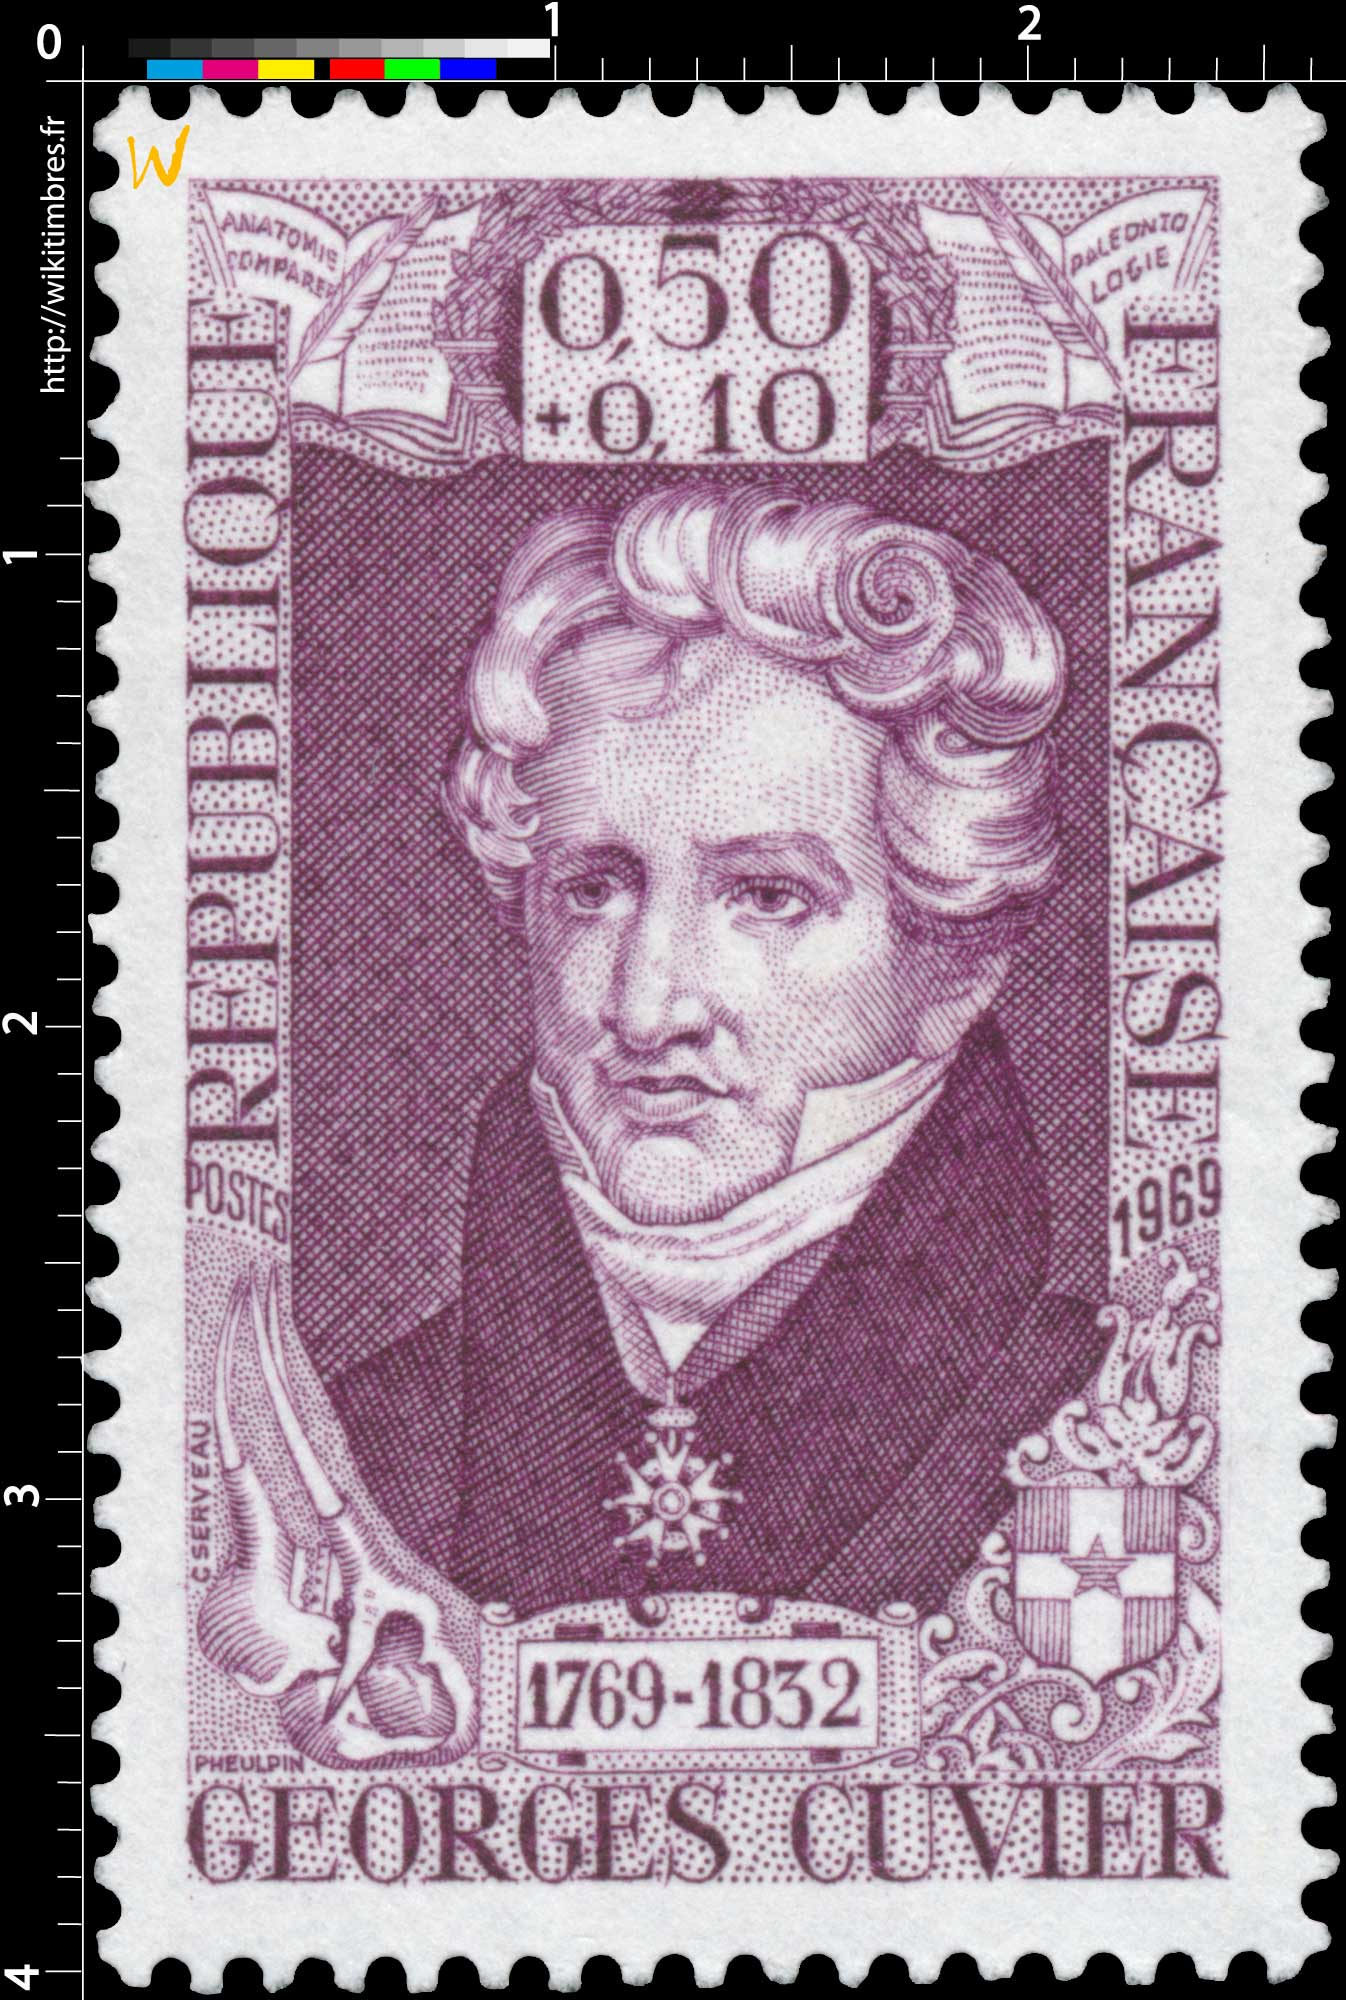 1969 GEORGES CUVIER 1769-1832